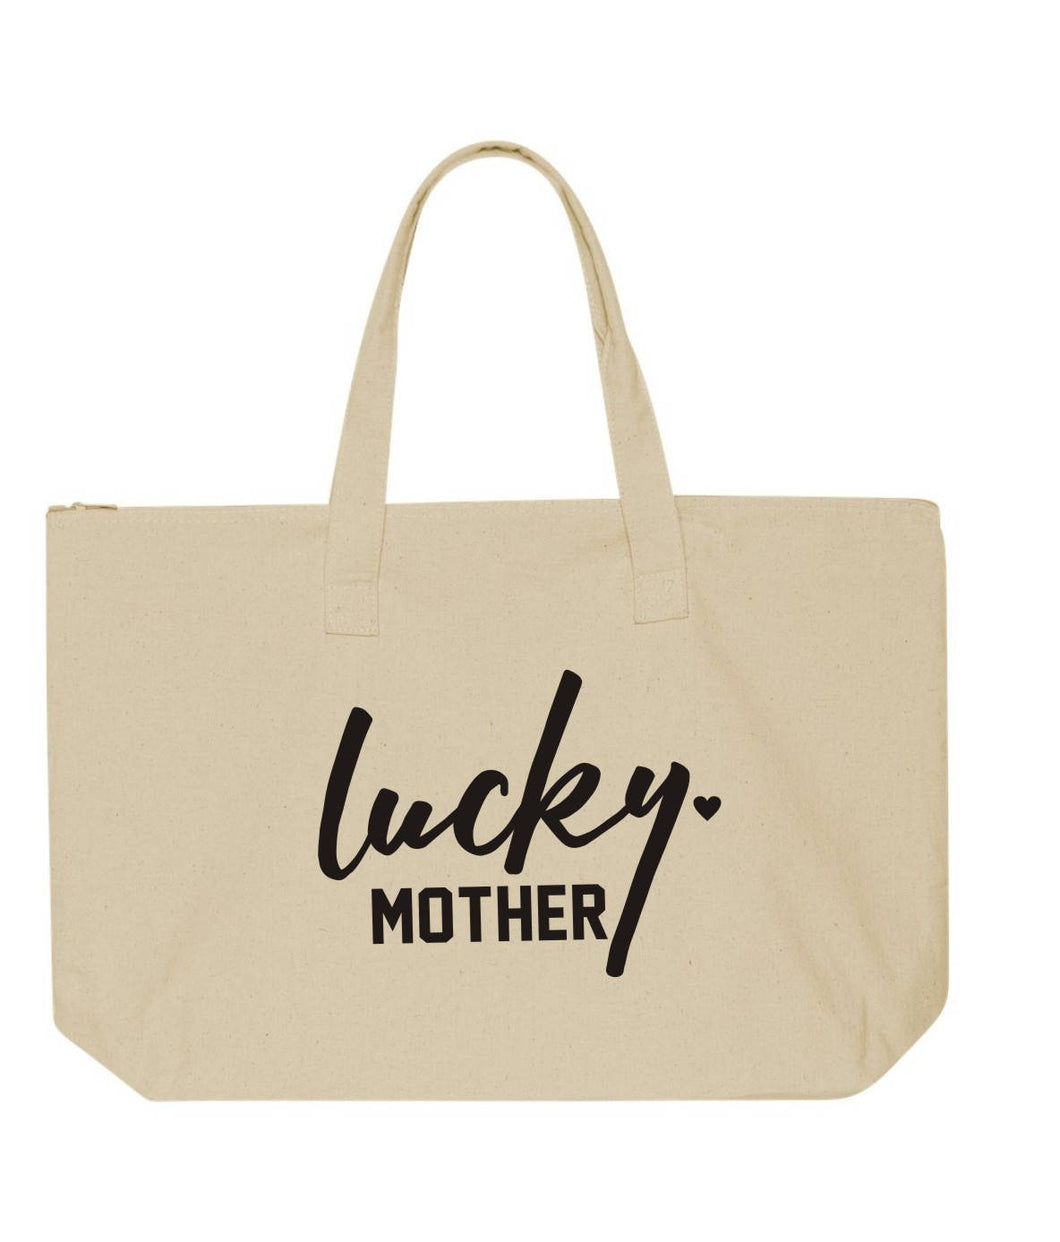 lucky-mother-handmade-tote-bag-jam-threads